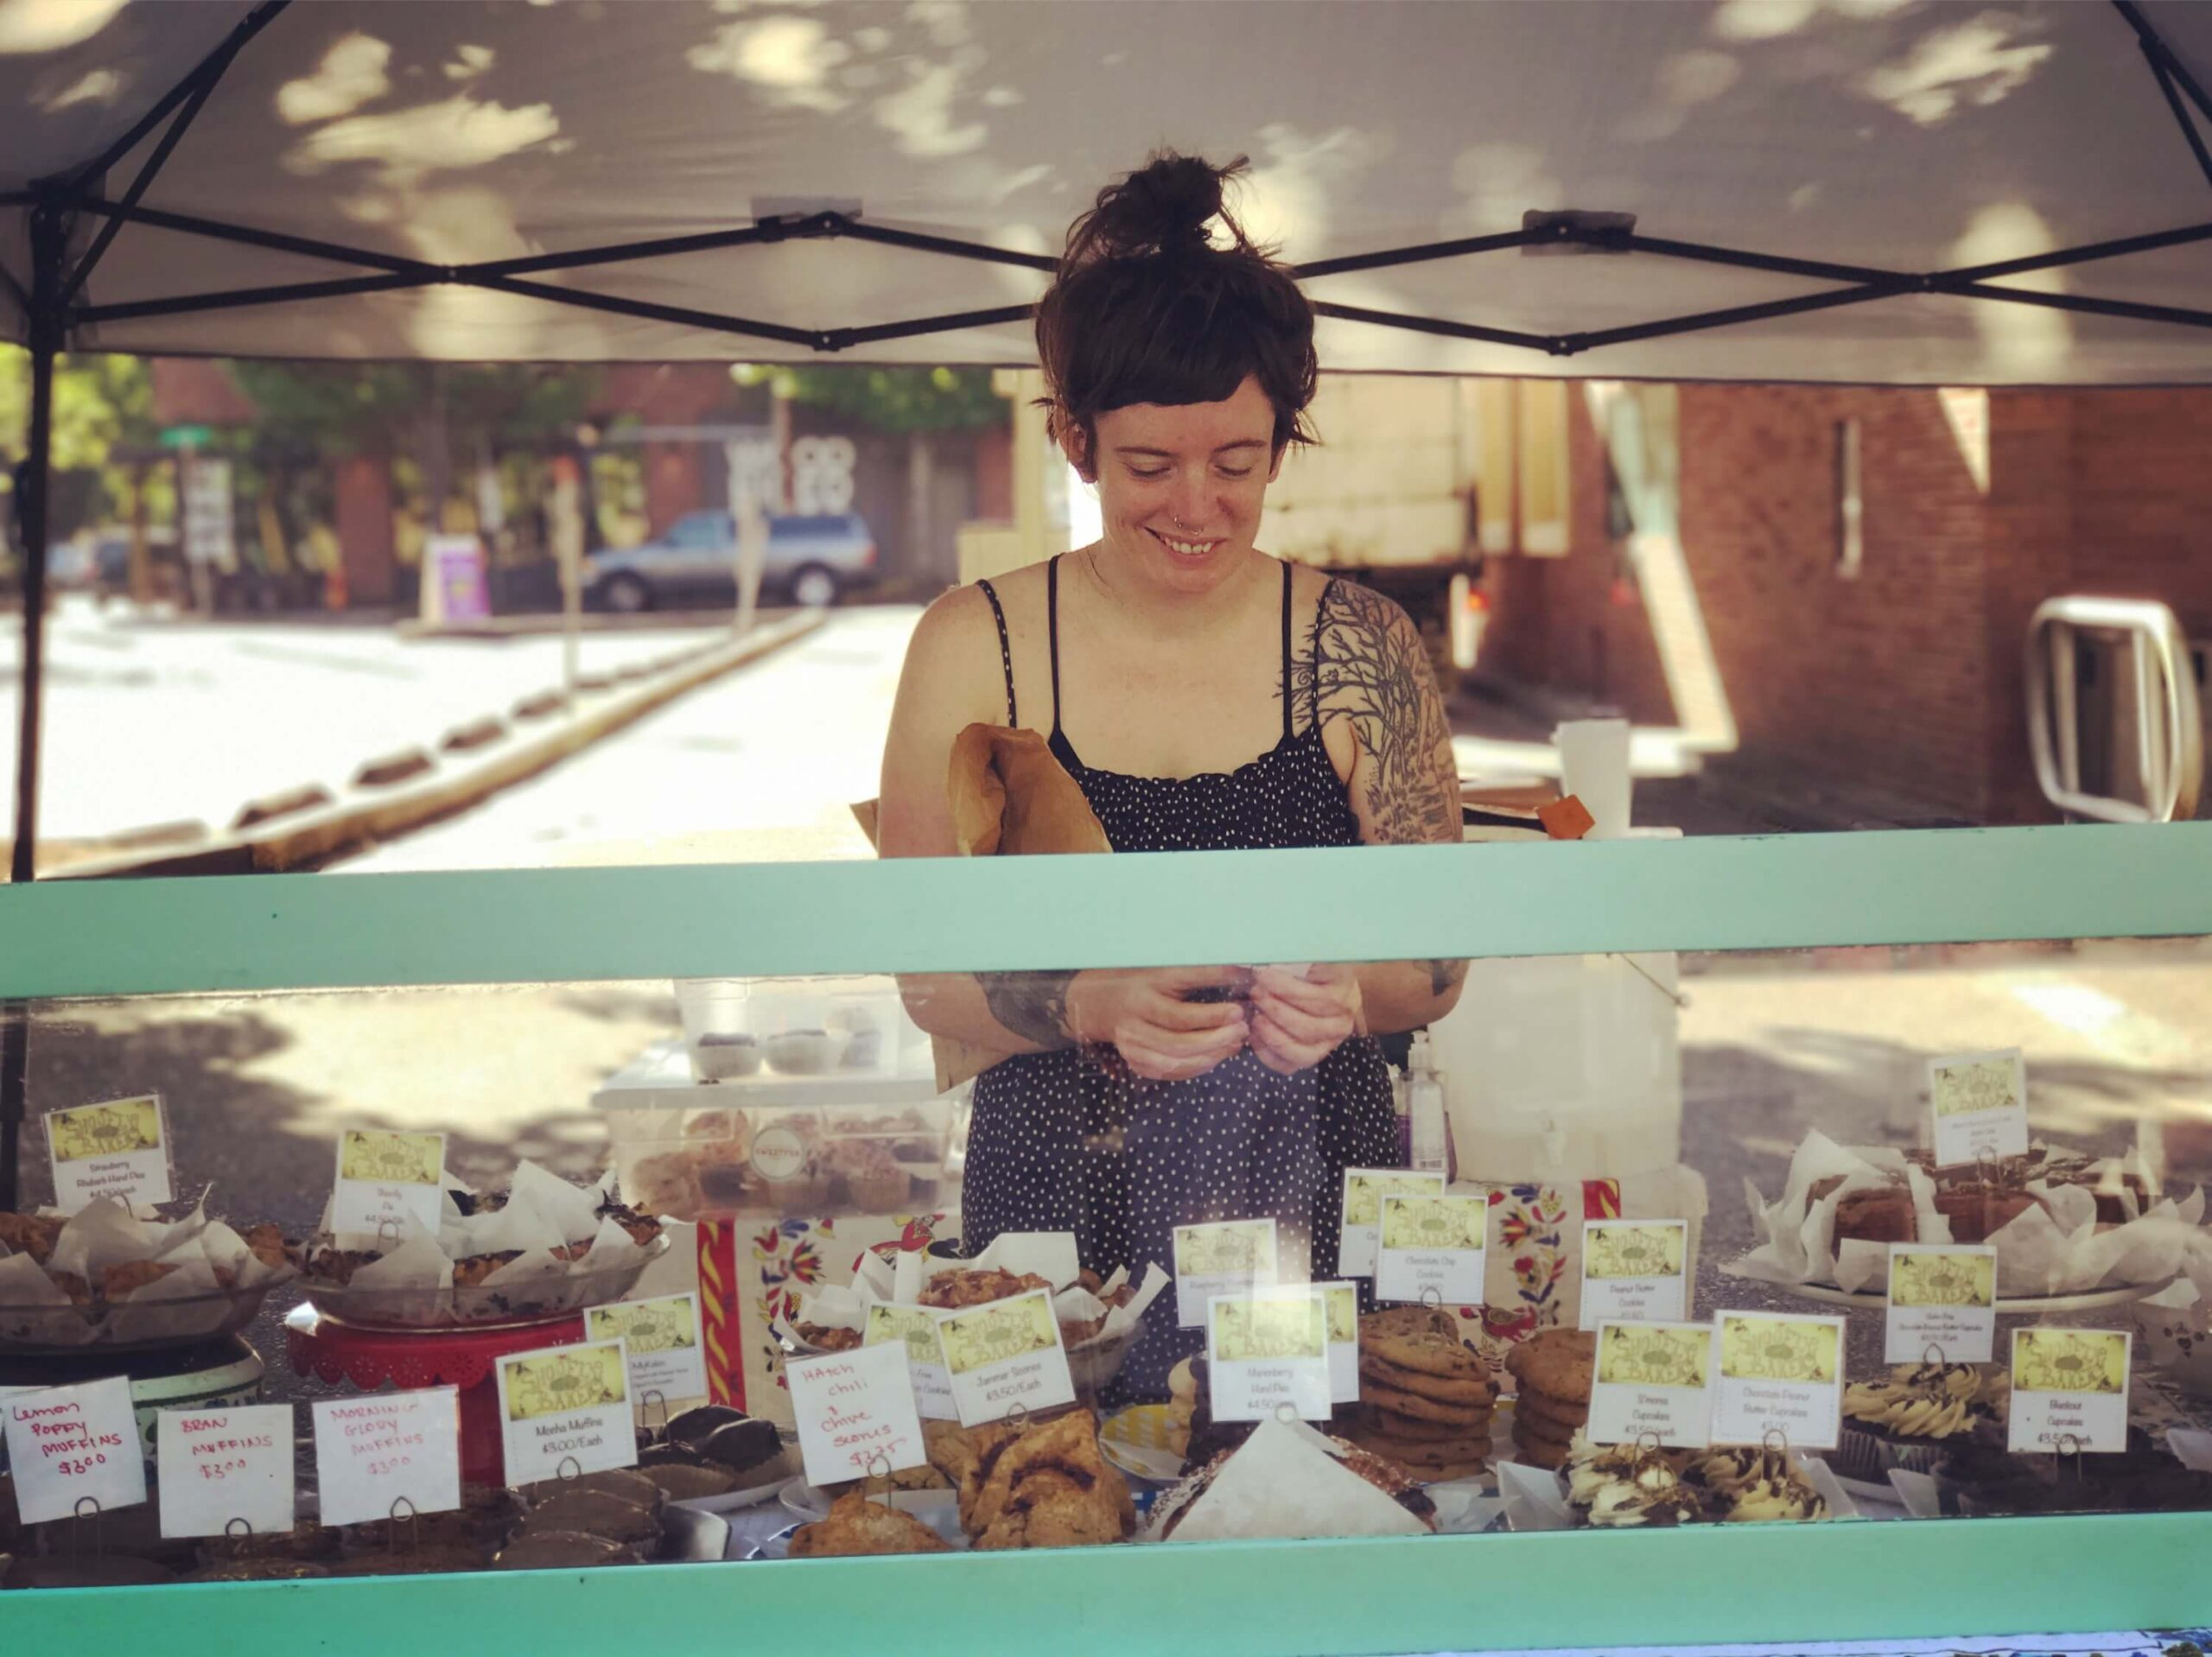 Shannon Levens | Owner of Shoofly Vegan Bakery